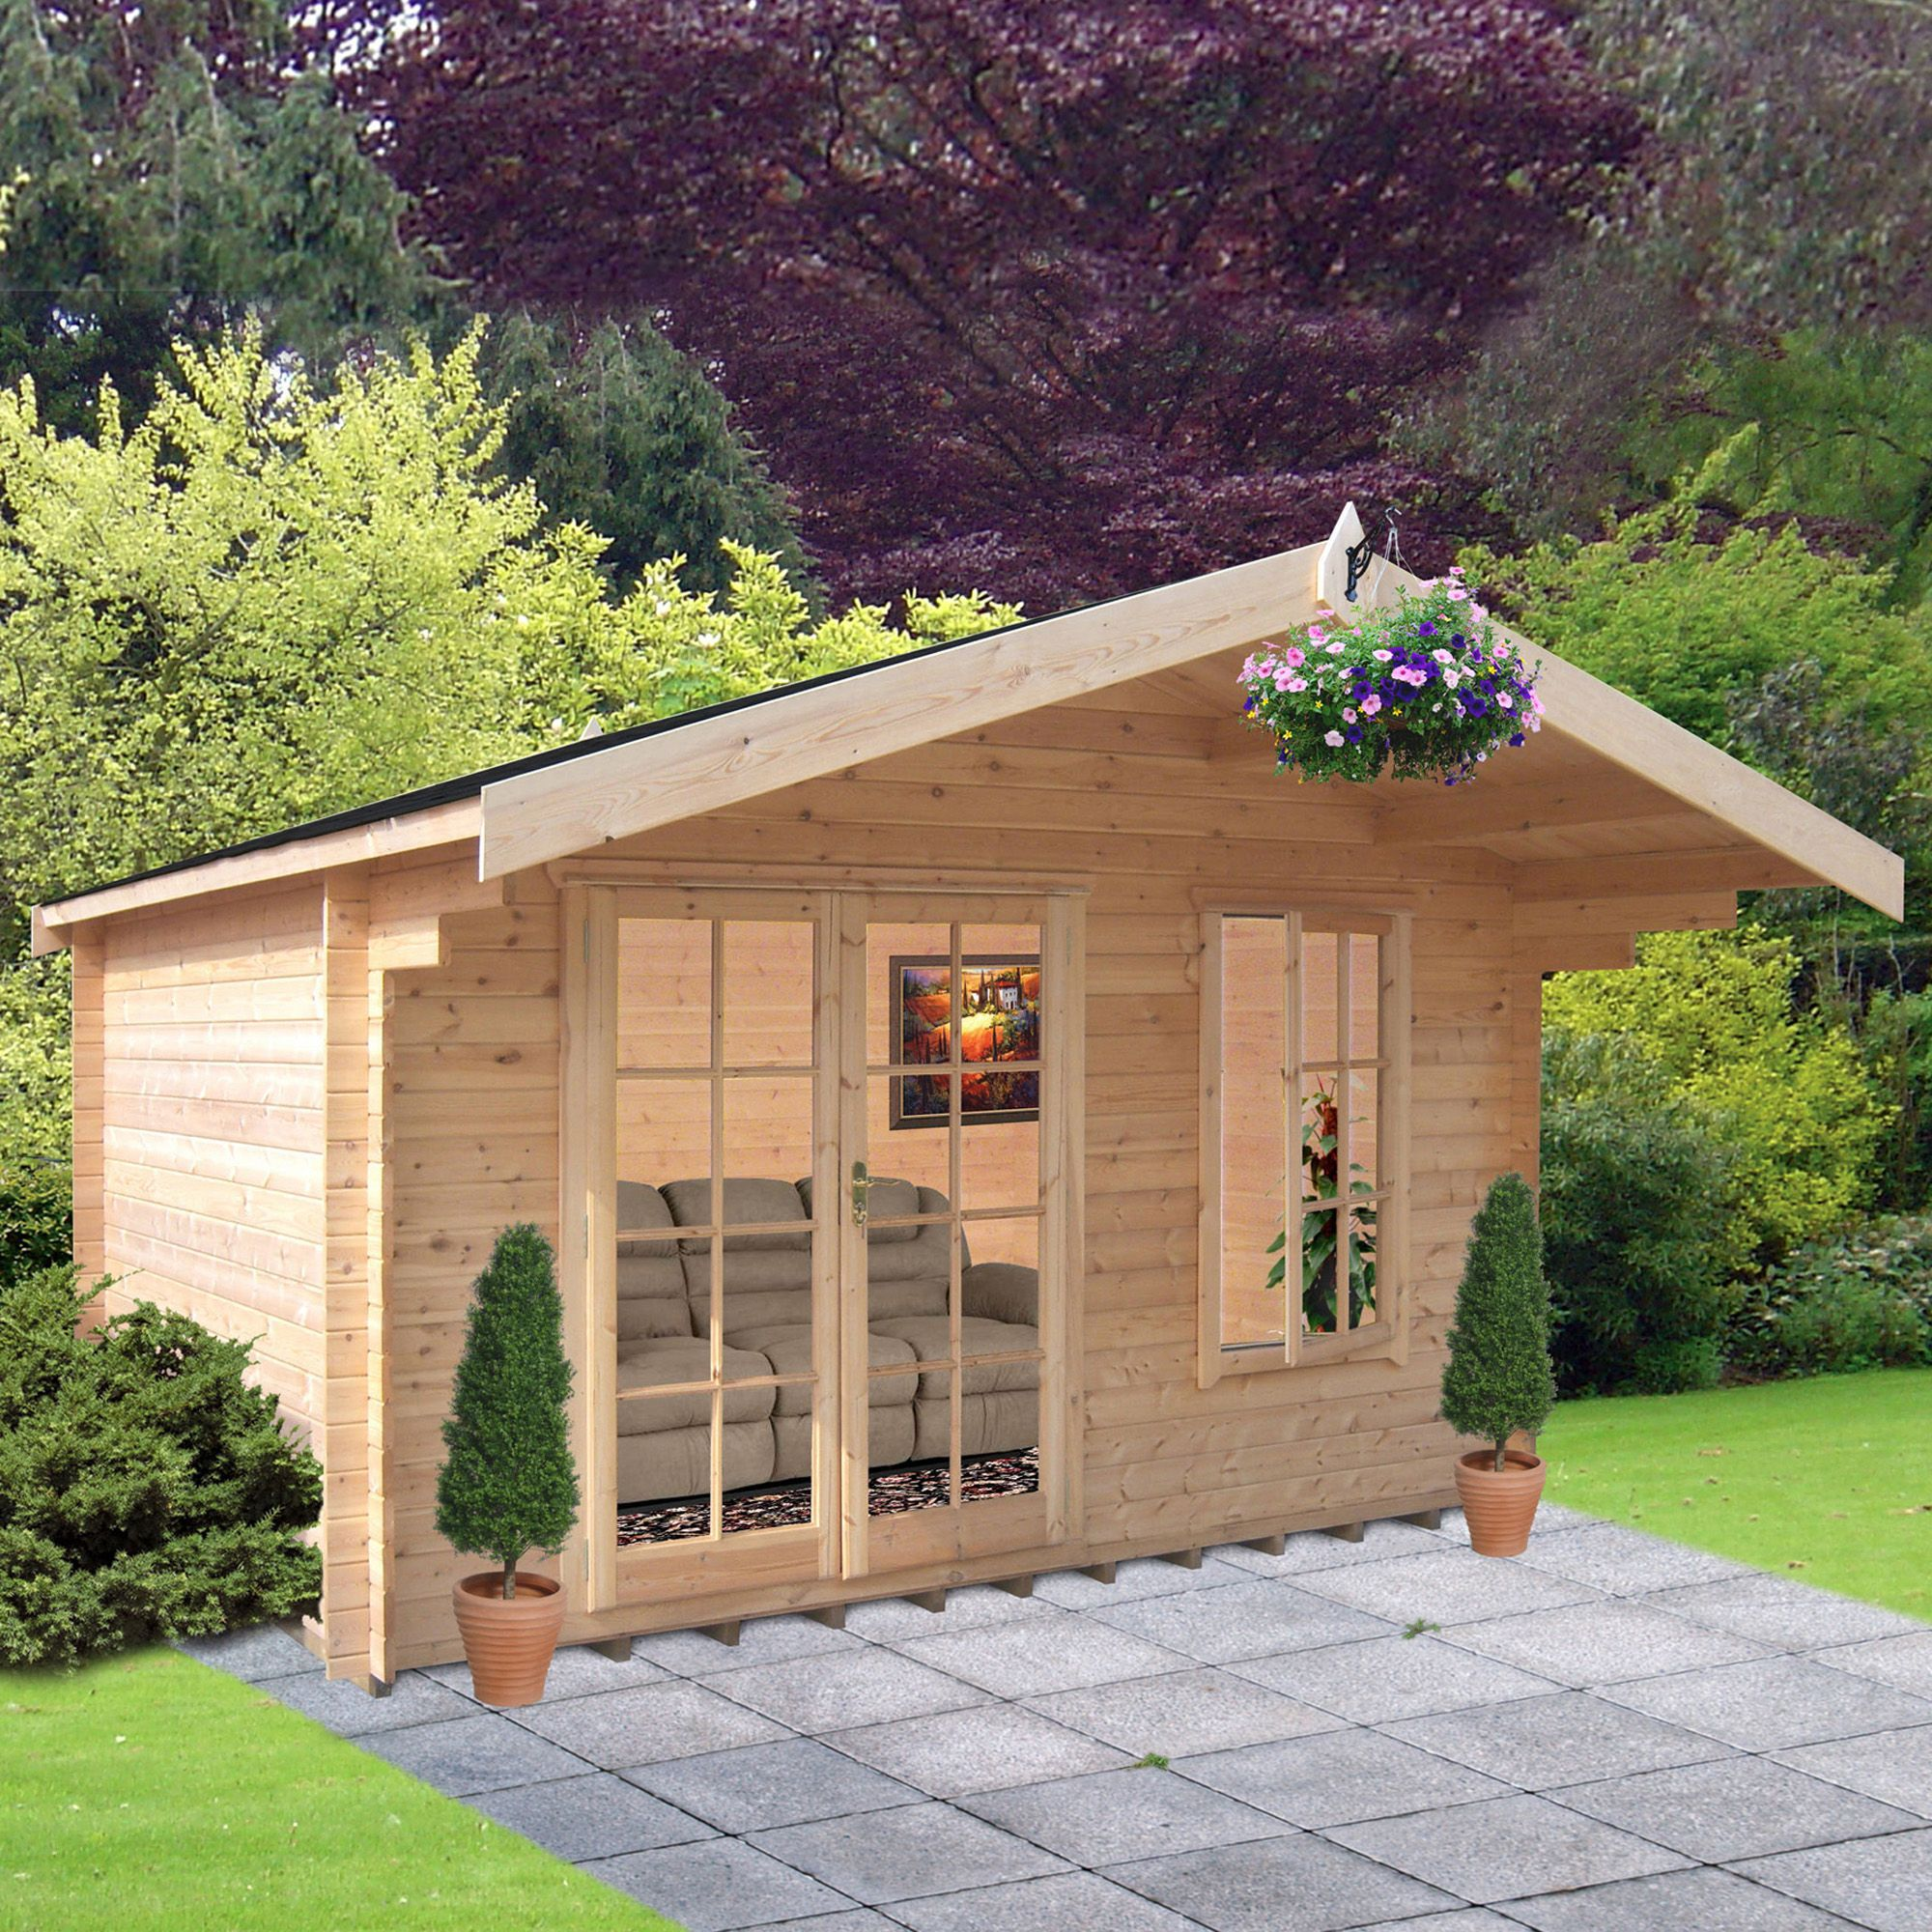 12X12 Cannock 28mm Tongue & Groove Timber Log Cabin With